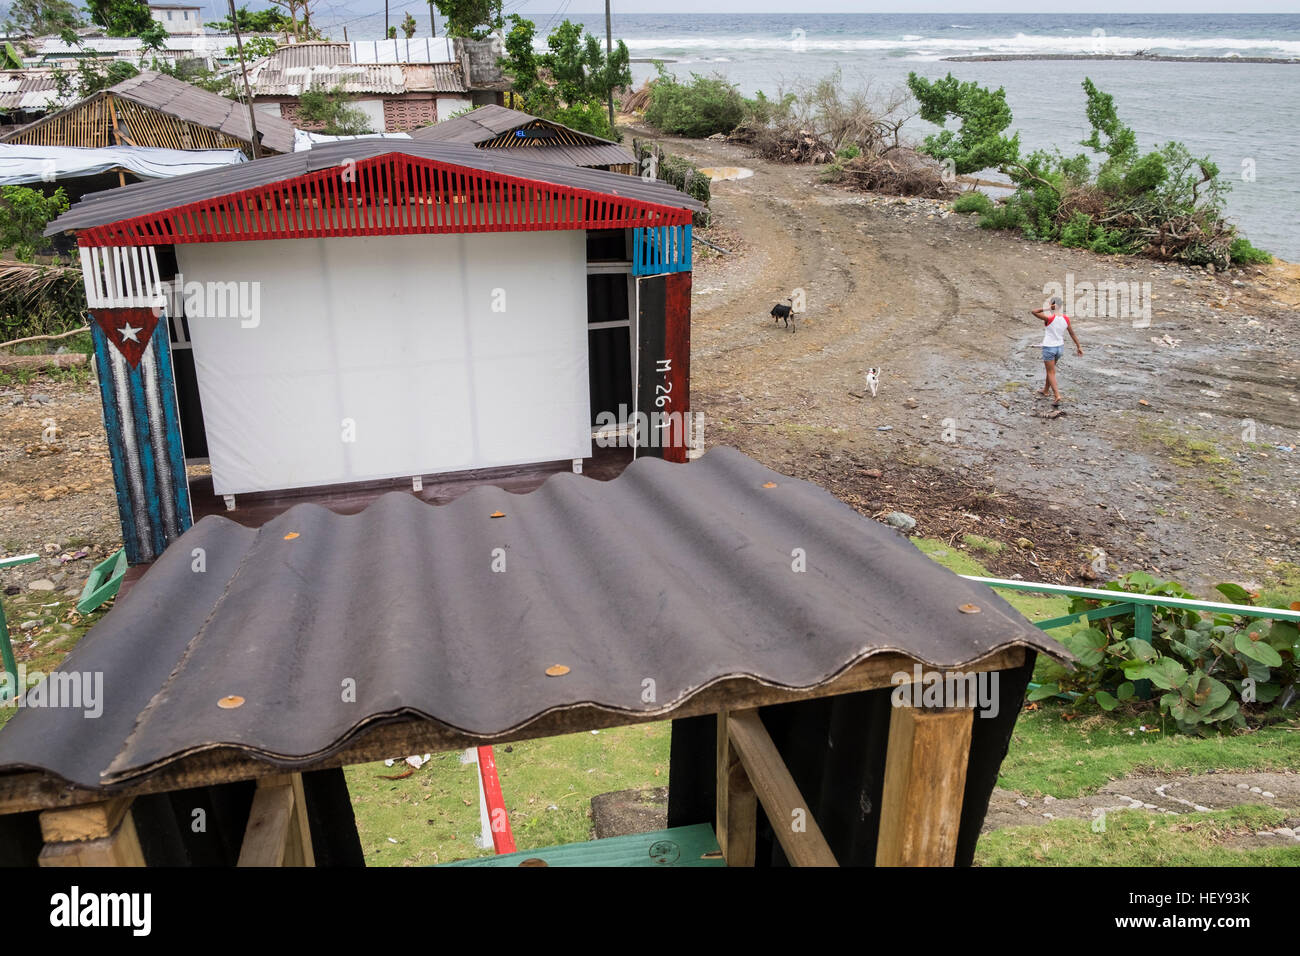 Projection screen set up for showing outdoor propaganda films at Yomuri, Baracoa, Cuba - Stock Image